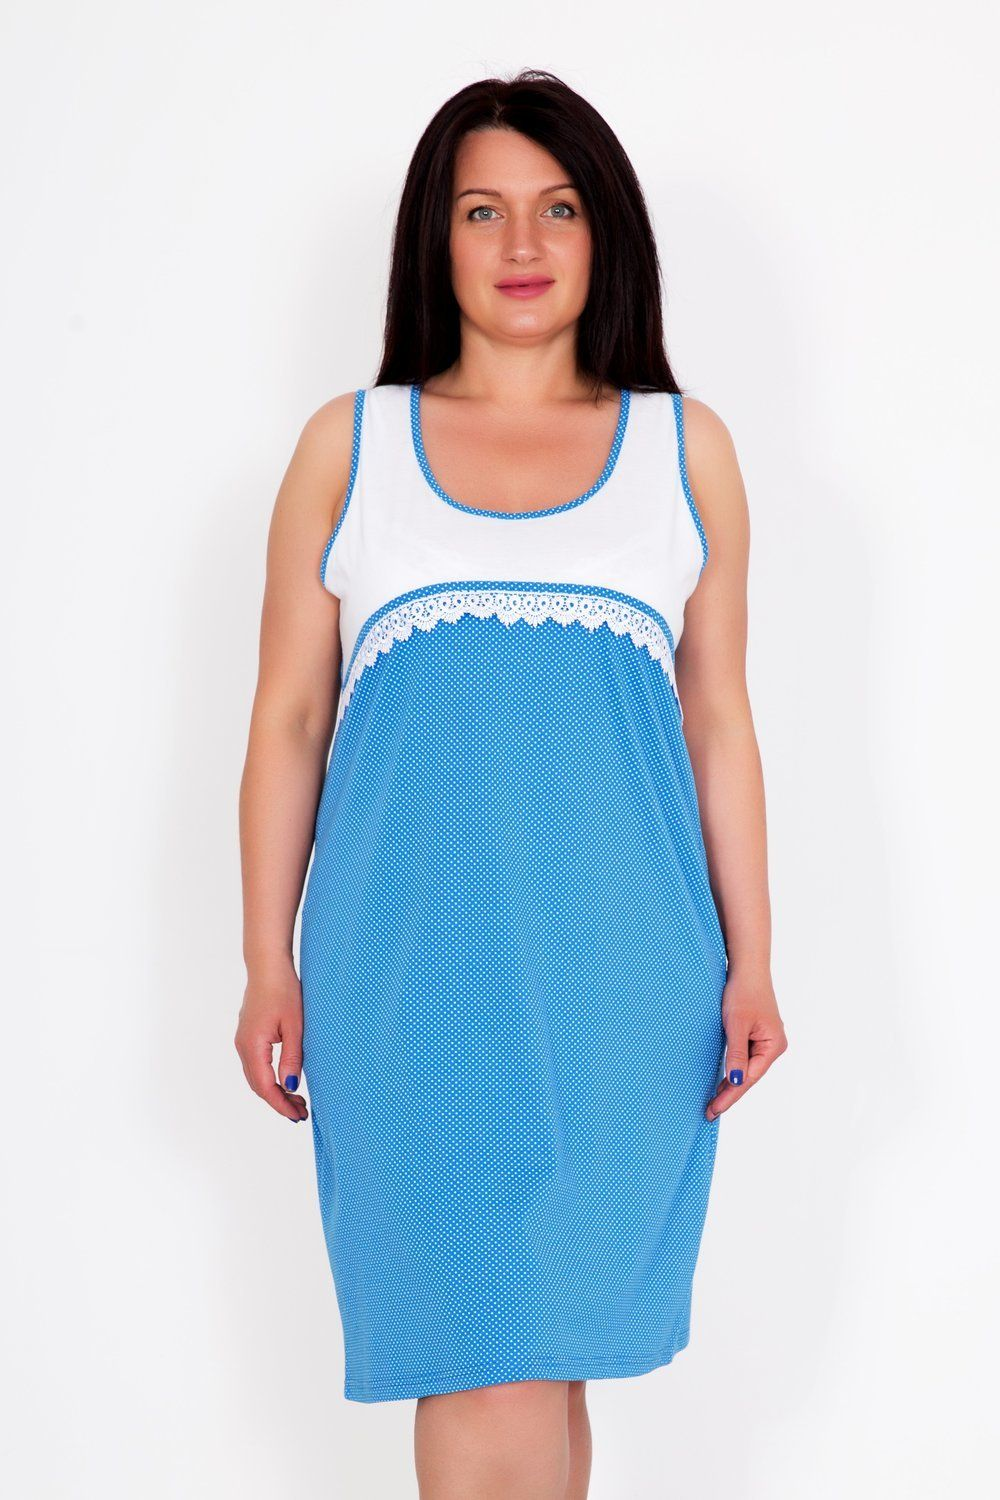 Lika Dress / Nightdress Daryana S Art. 5206